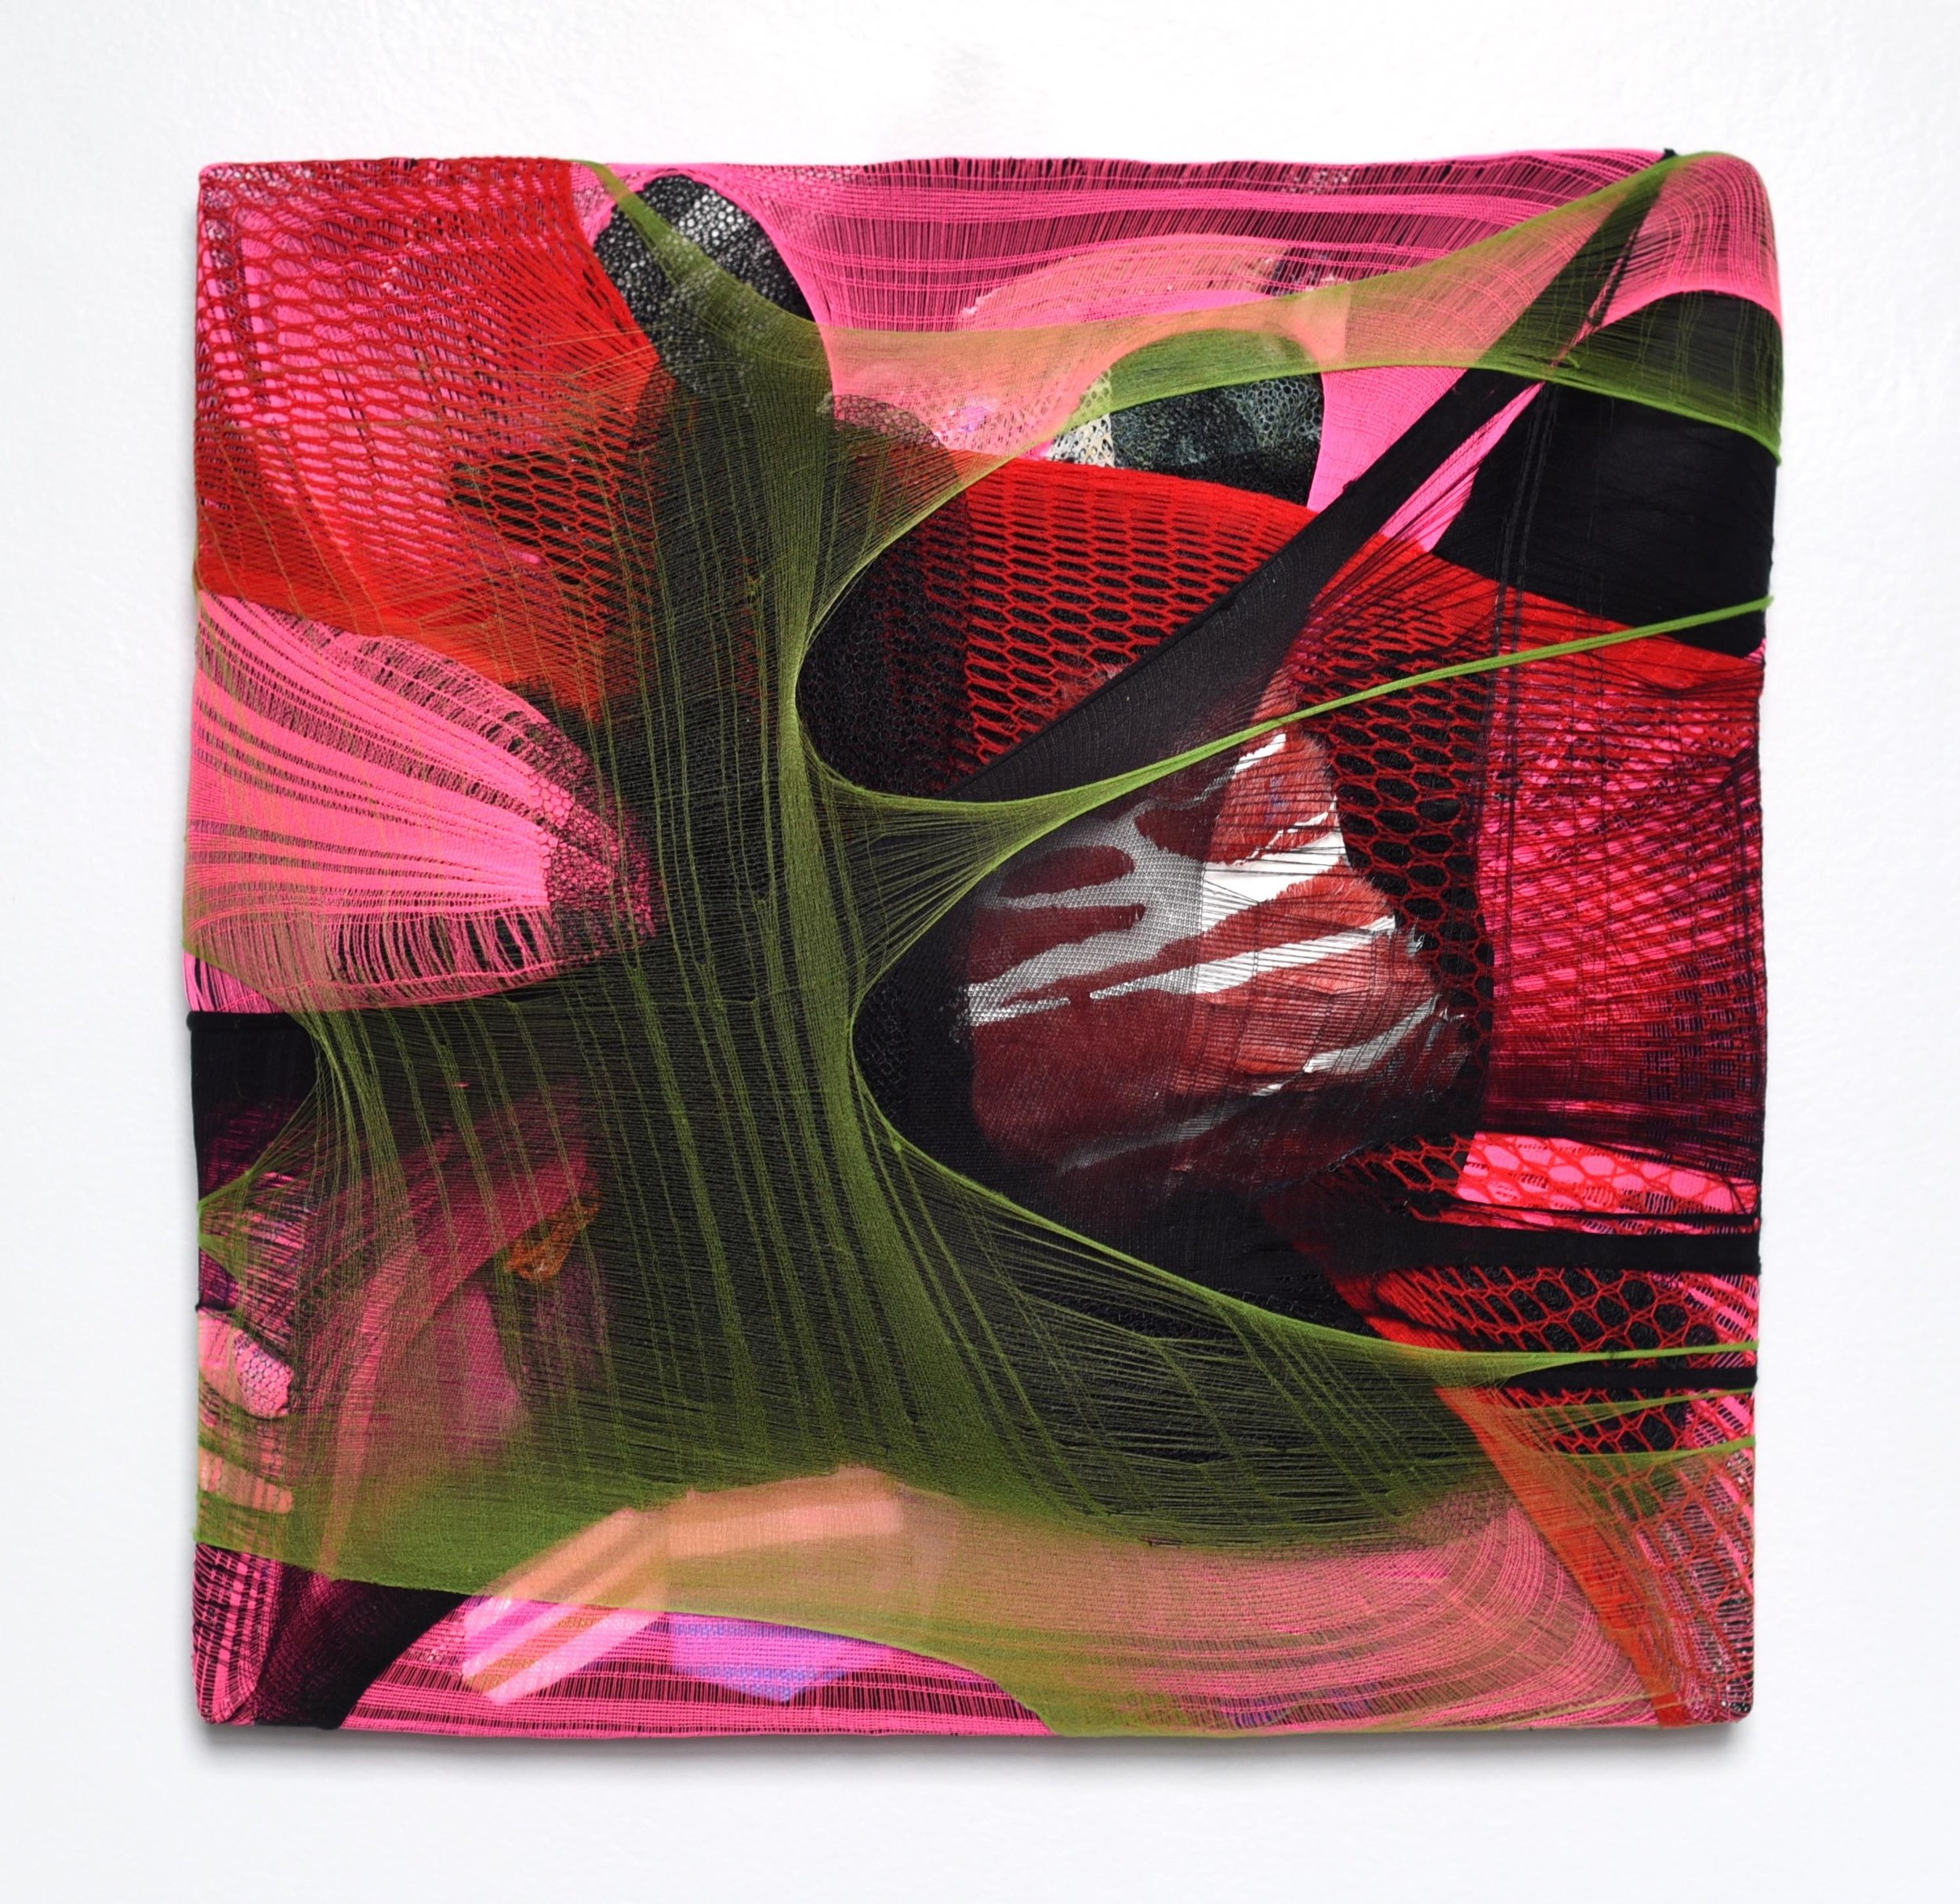 Wall Pillow 1, 2018, nylon, fabric scraps and acrylic paint on canvas, 12 x 12 x 2.5 in, 850$